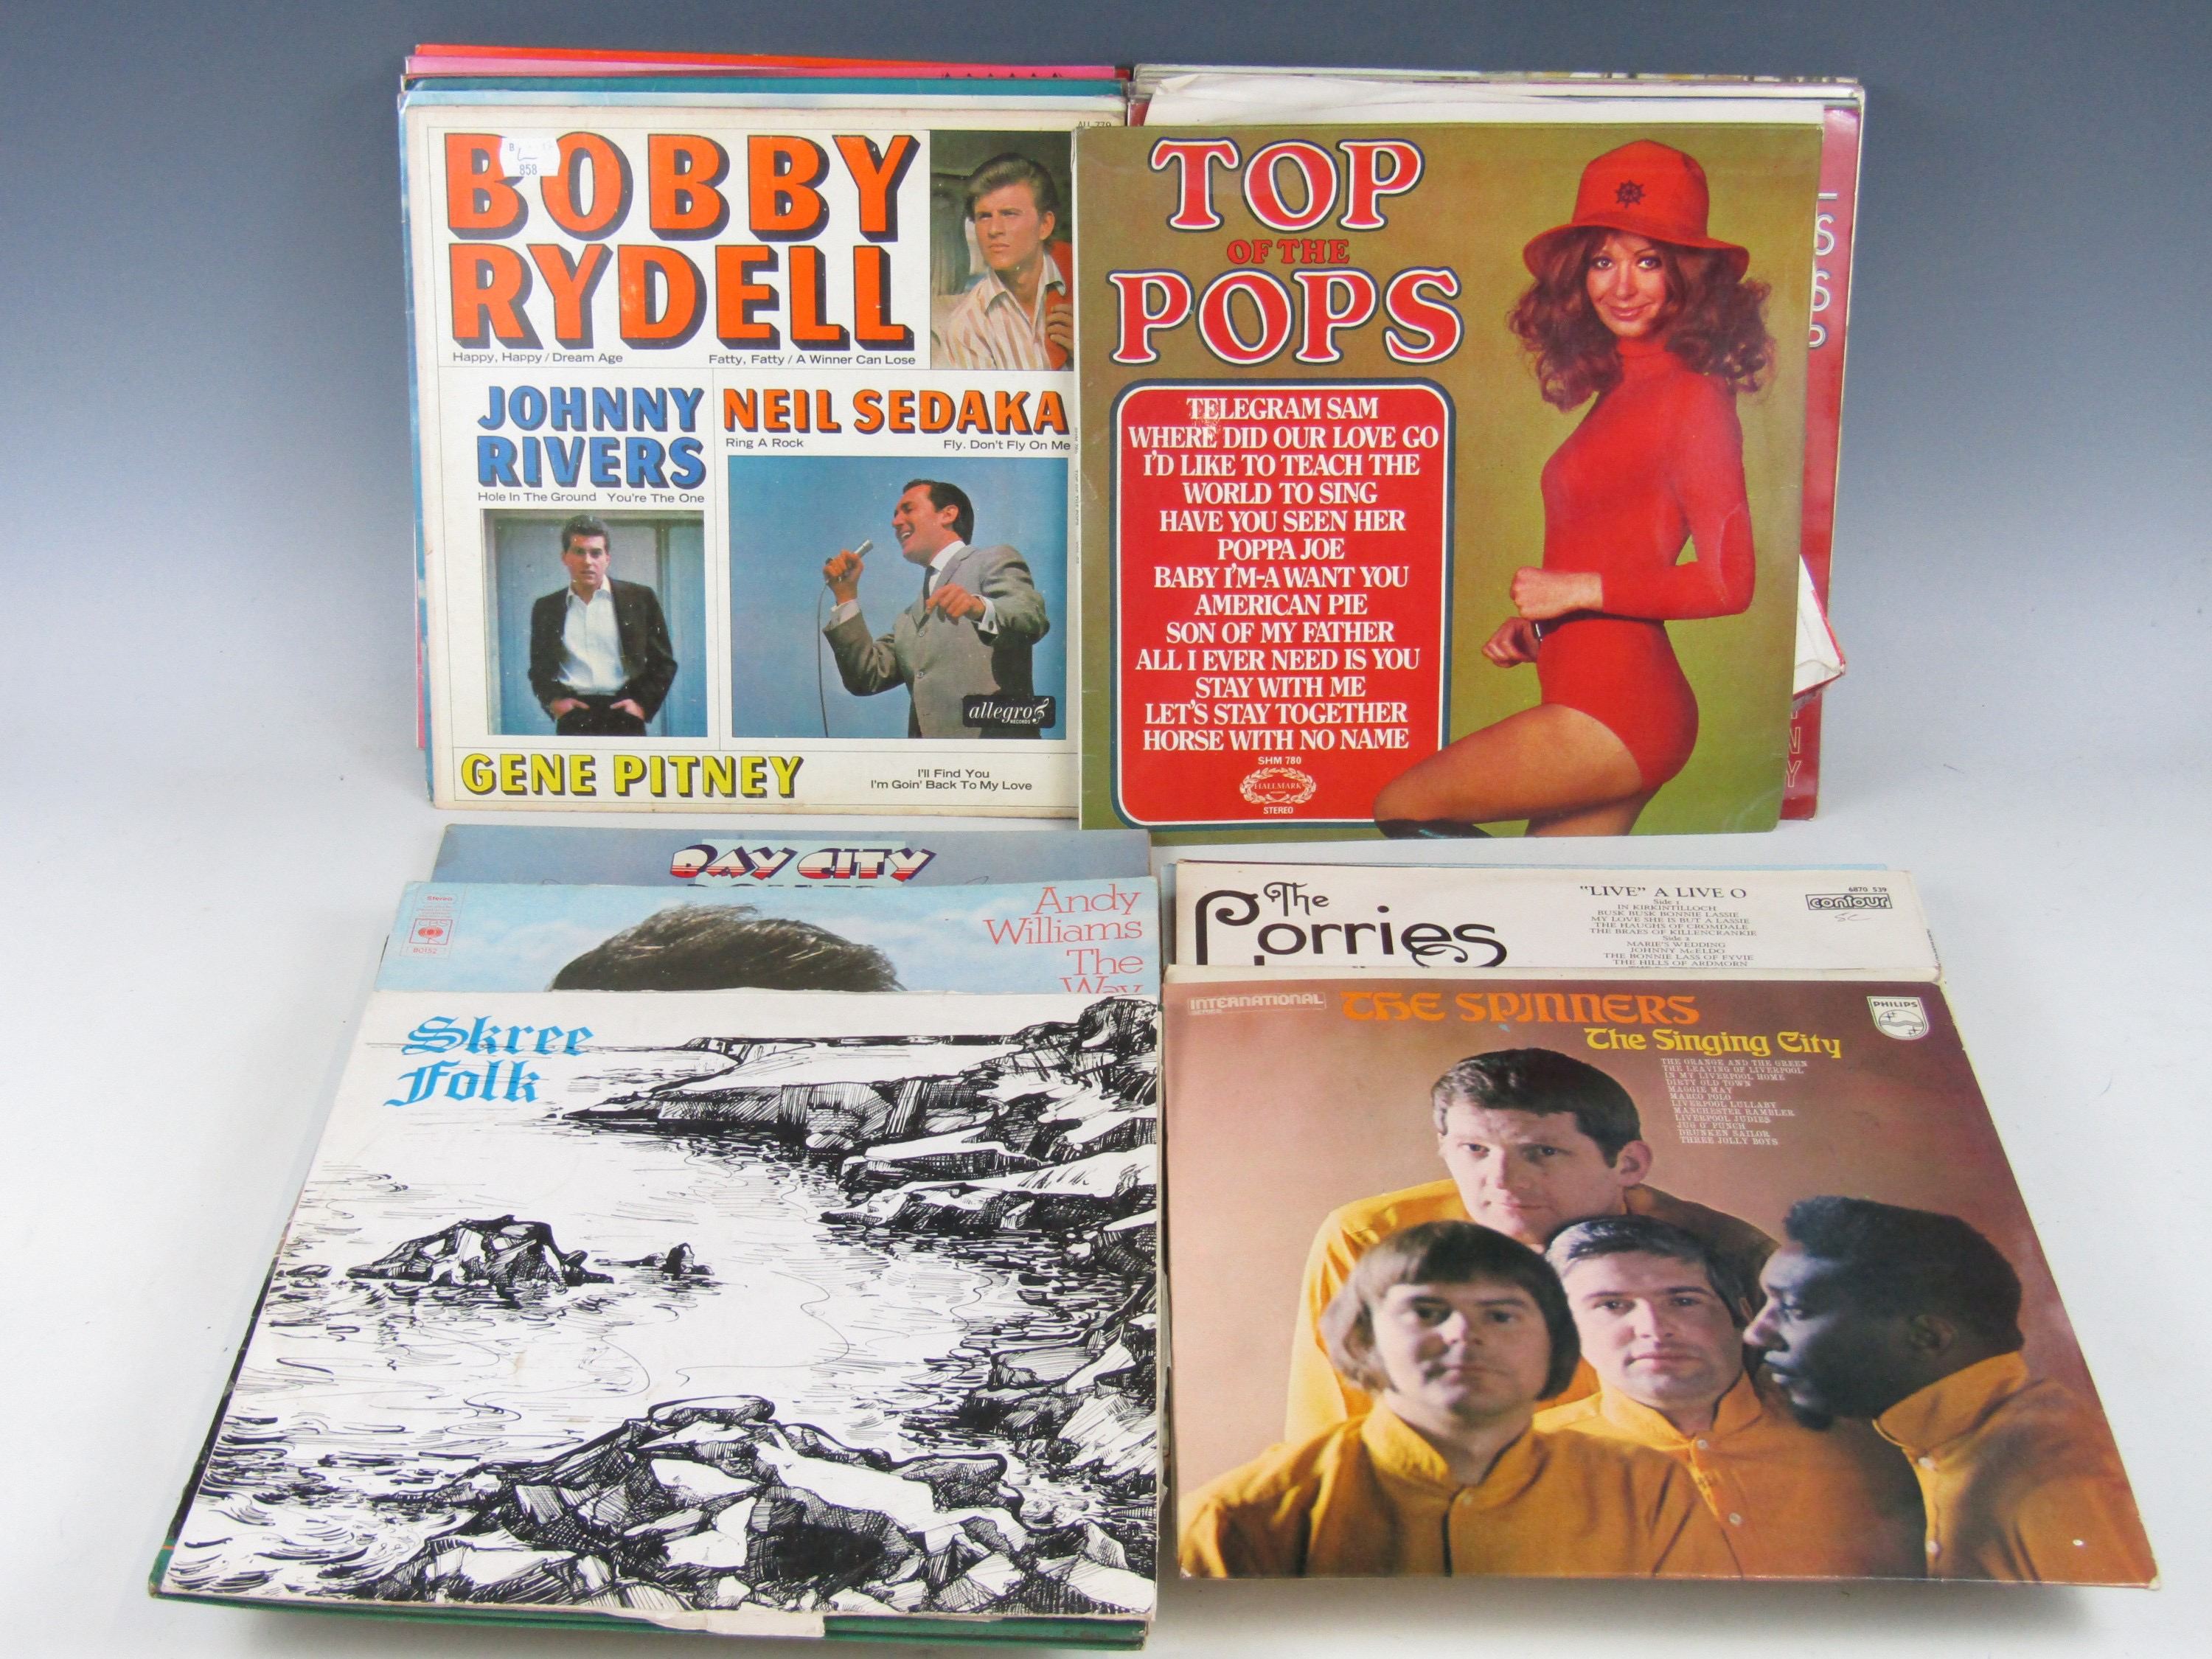 Lot 50 - A quantity of various LP's including Bobby Rydell and Top of the Pops etc